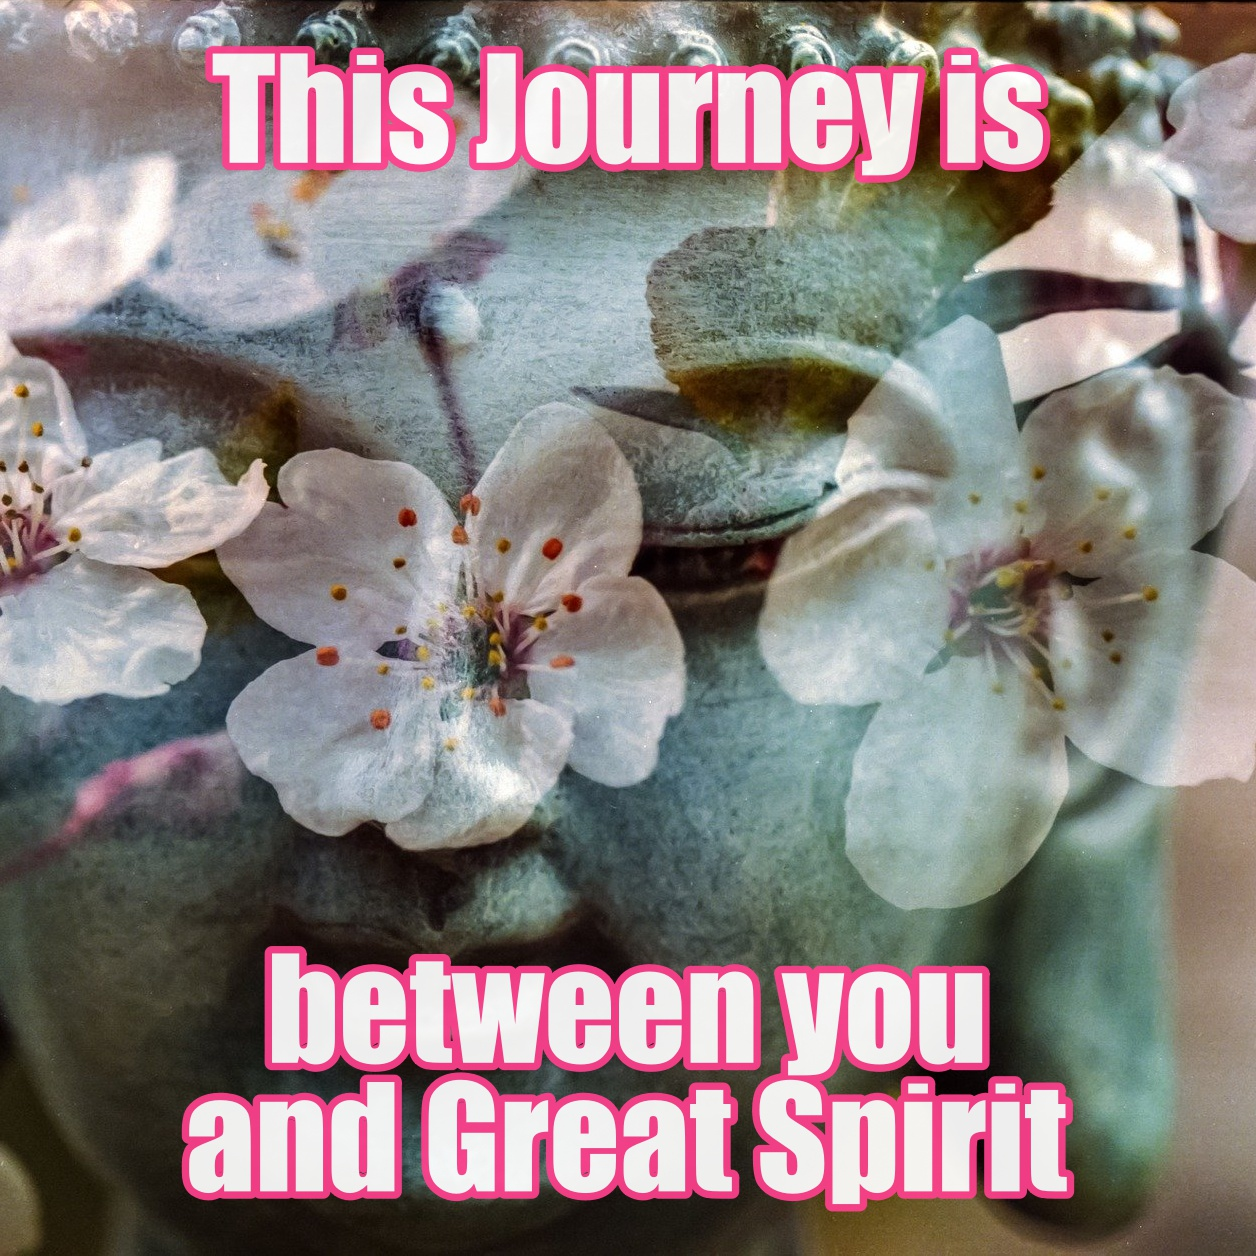 THIS JOURNEY IS BETWEEN YOU & GOD/DIVINE/GREAT MOTHER